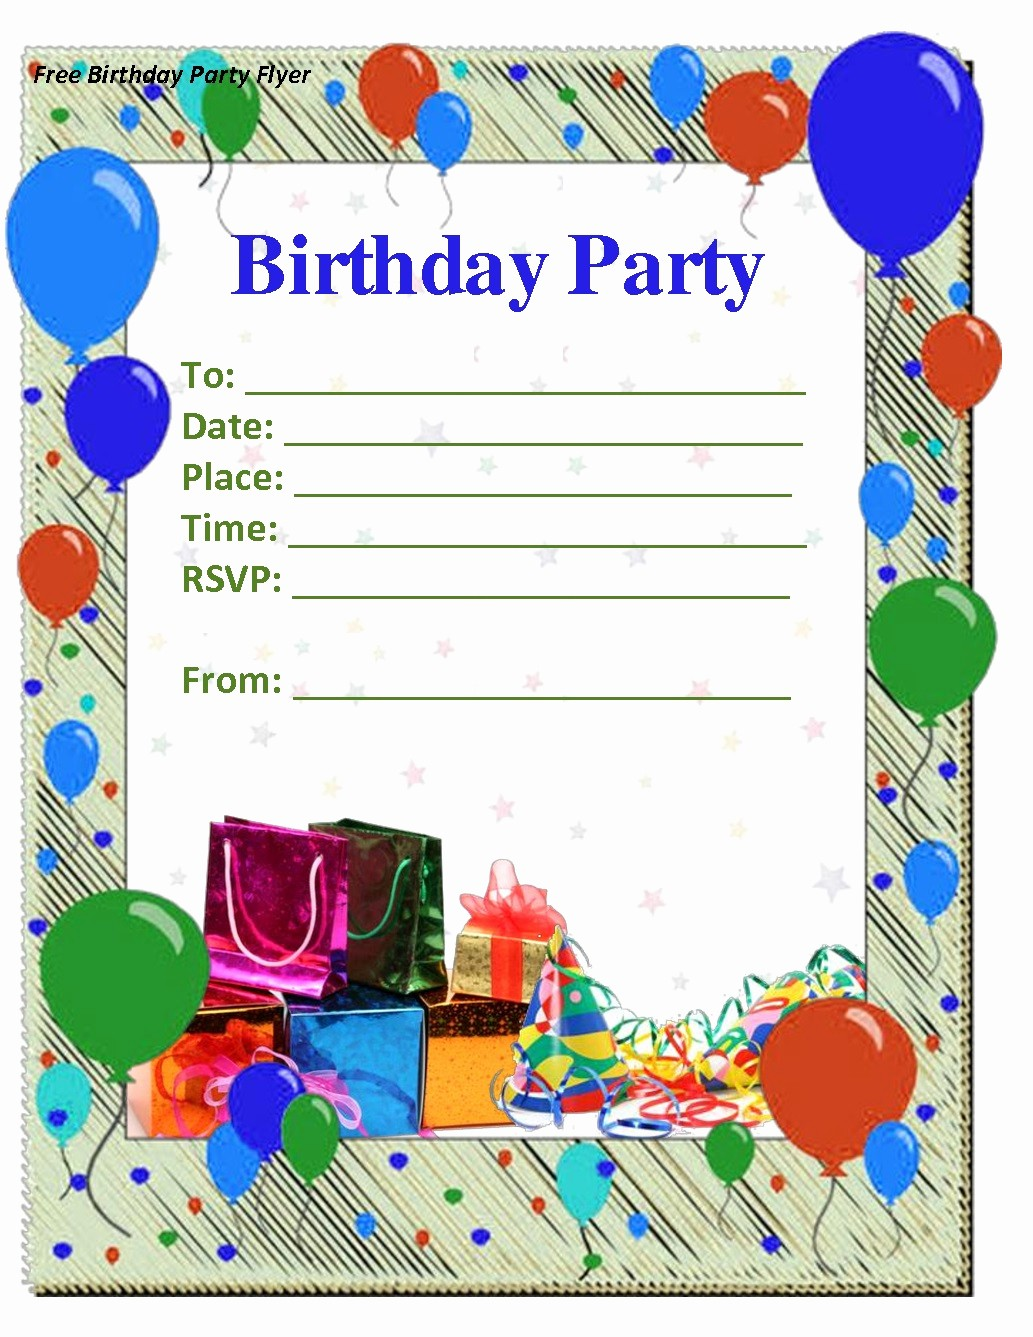 Birthday Invitation Card Template Free Awesome Birthday Invitation Template